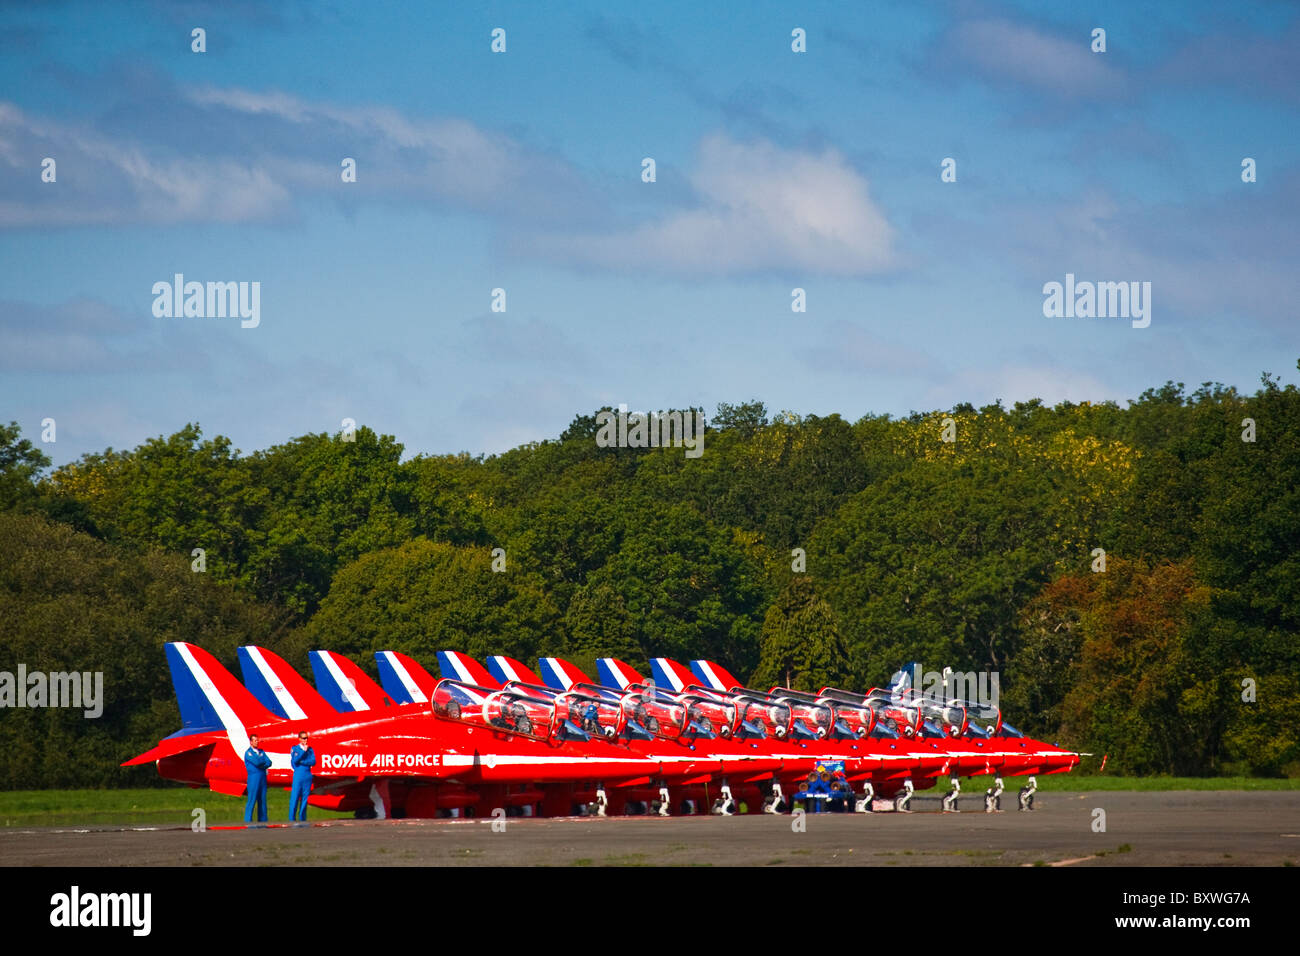 The Red Arrows formation team at the Wings & Wheels display, Dunsfold Surrey UK 2010 - Stock Image